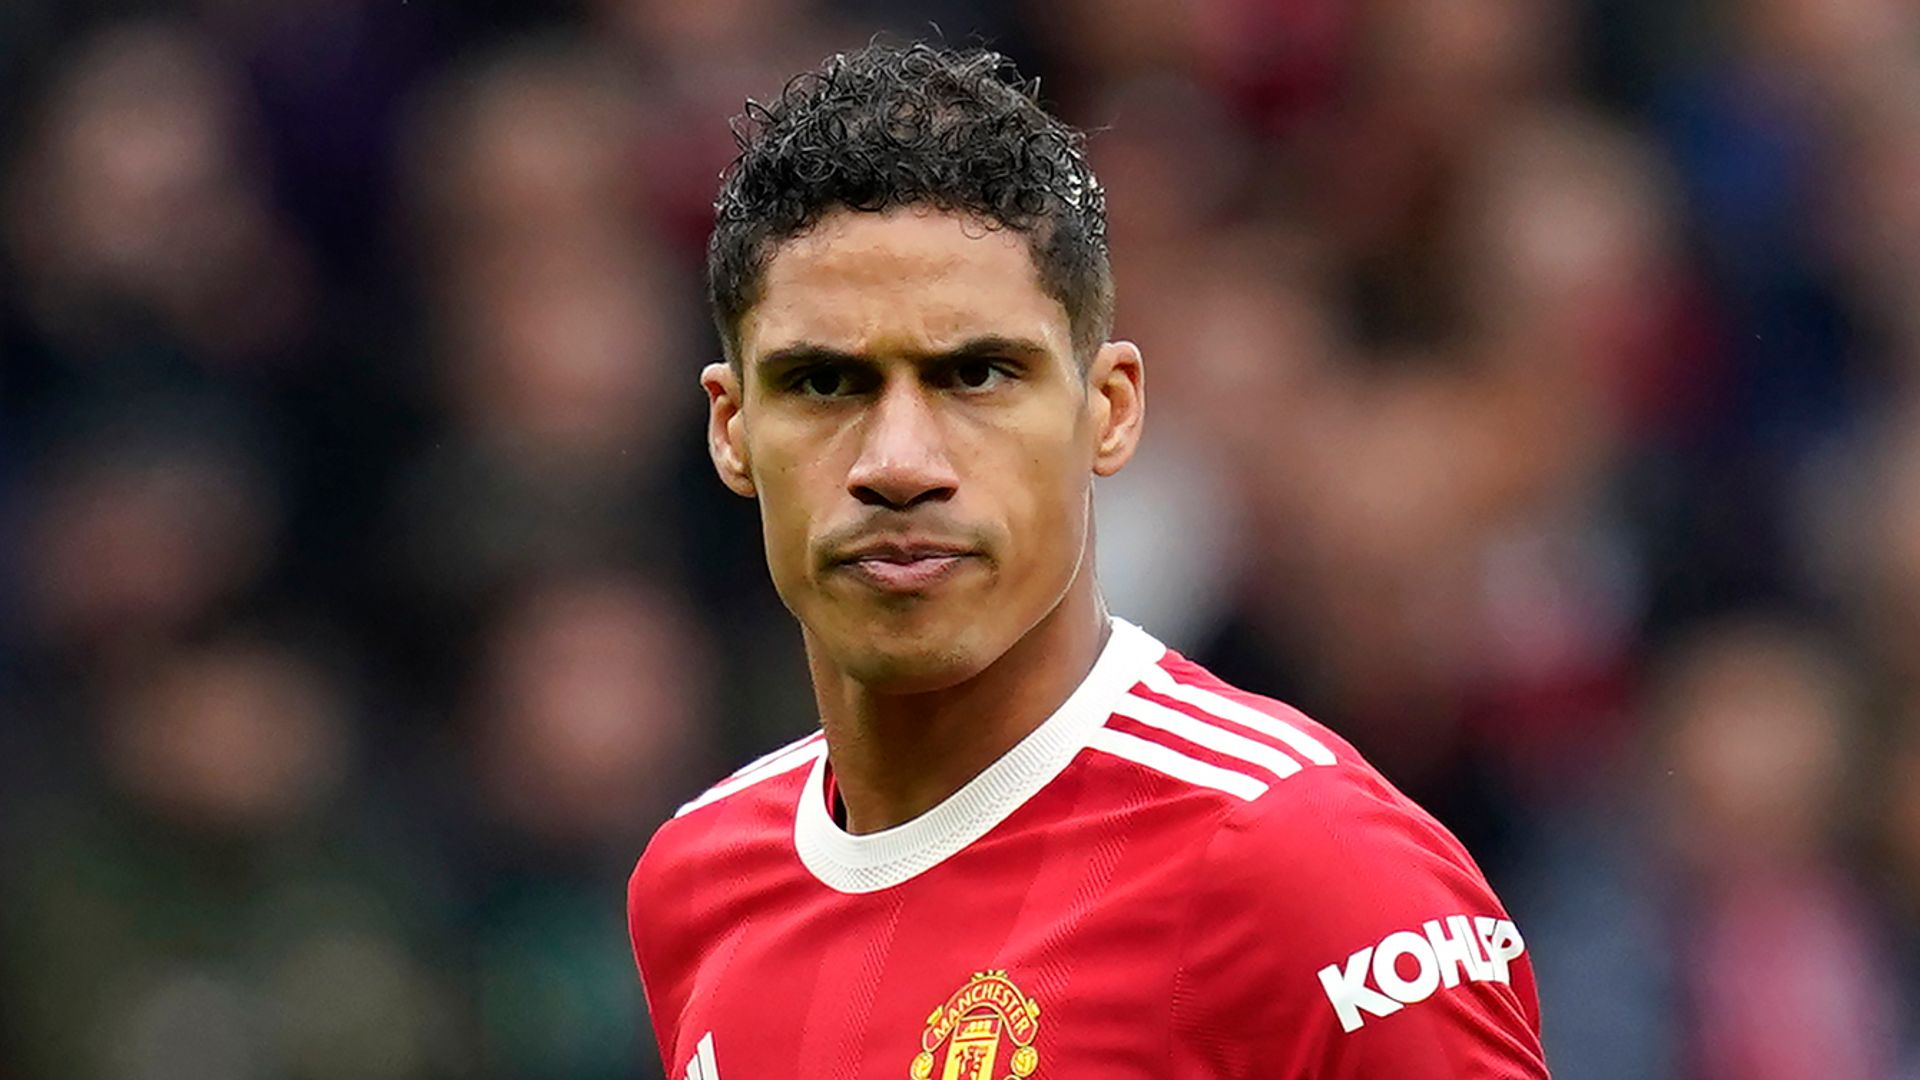 Varane out for 'few weeks' with groin injury